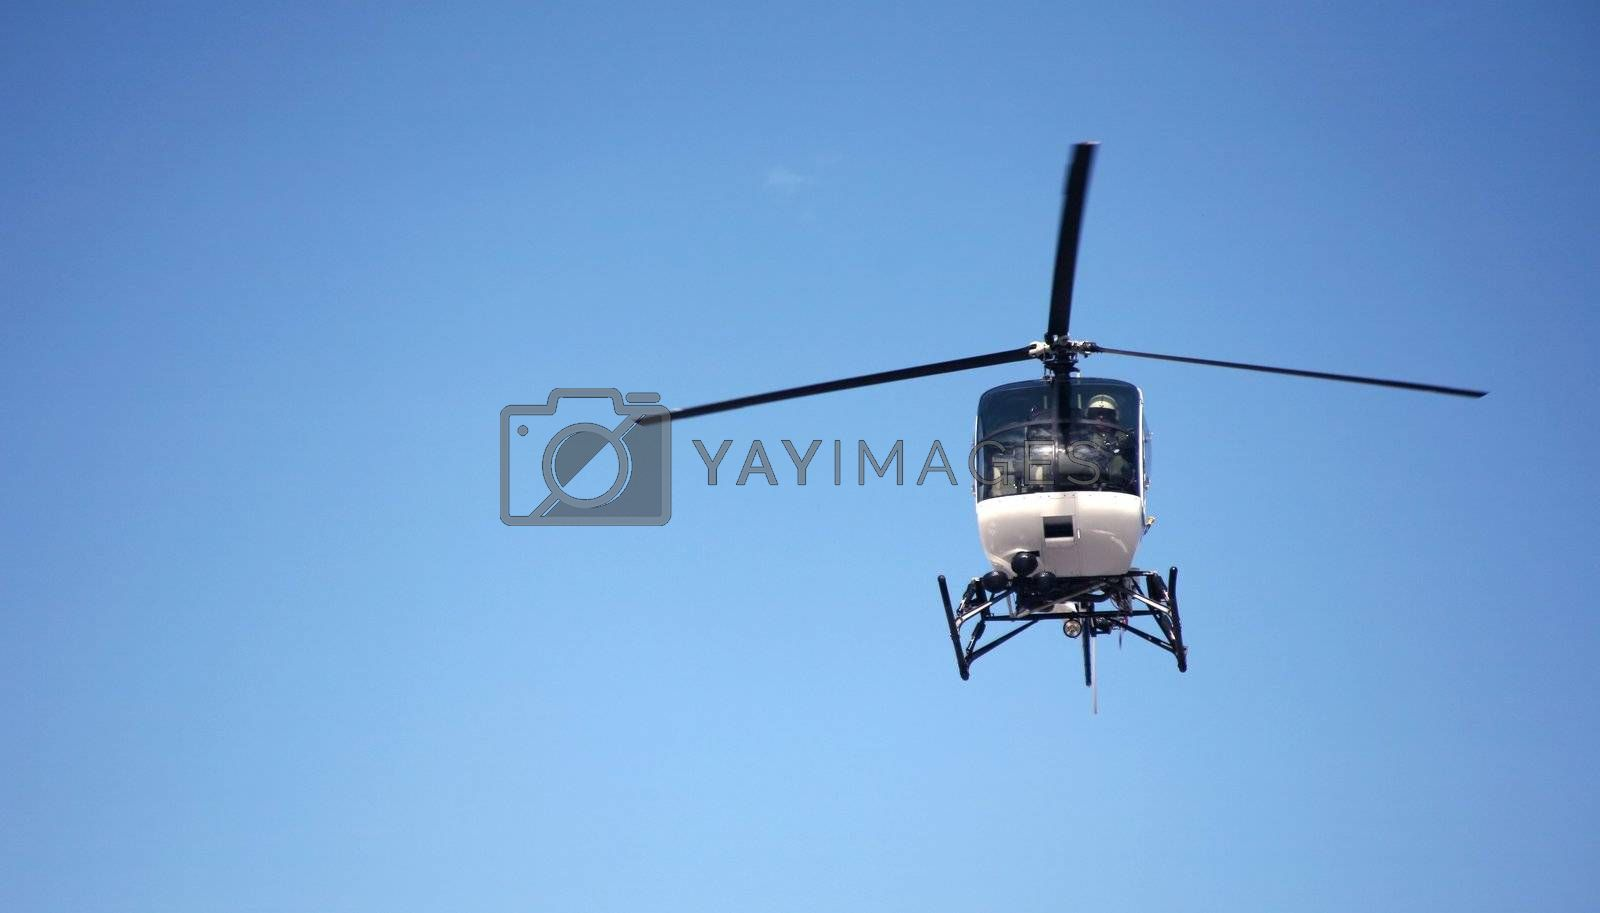 Royalty free image of Helicopter by scrappinstacy